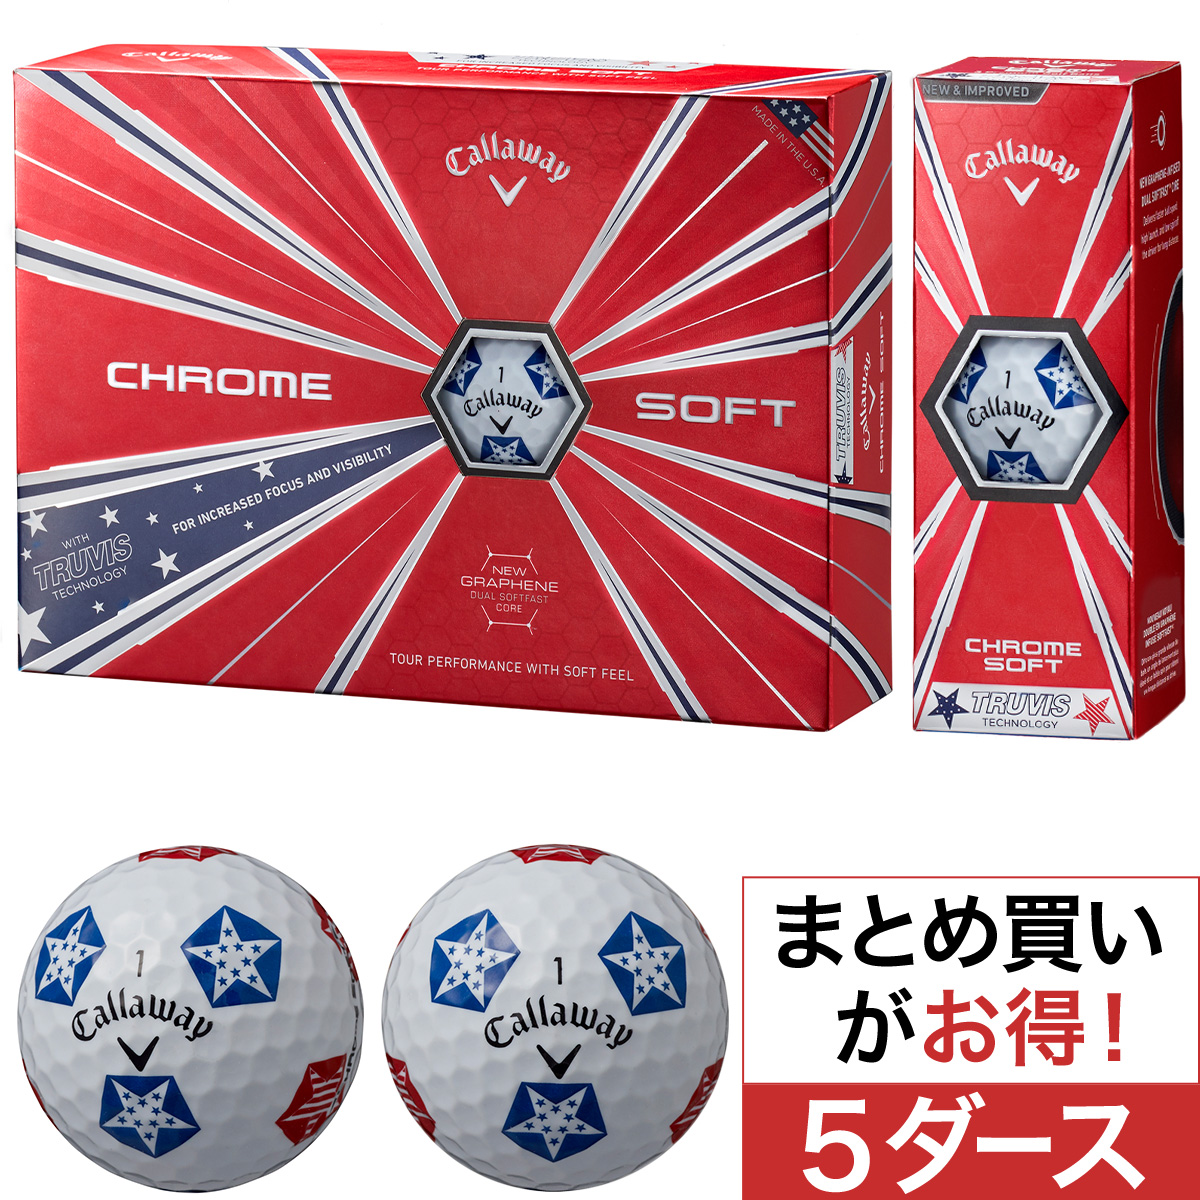 CHROME SOFT TRUVIS STARS/STRIPES ボール 5ダースセット